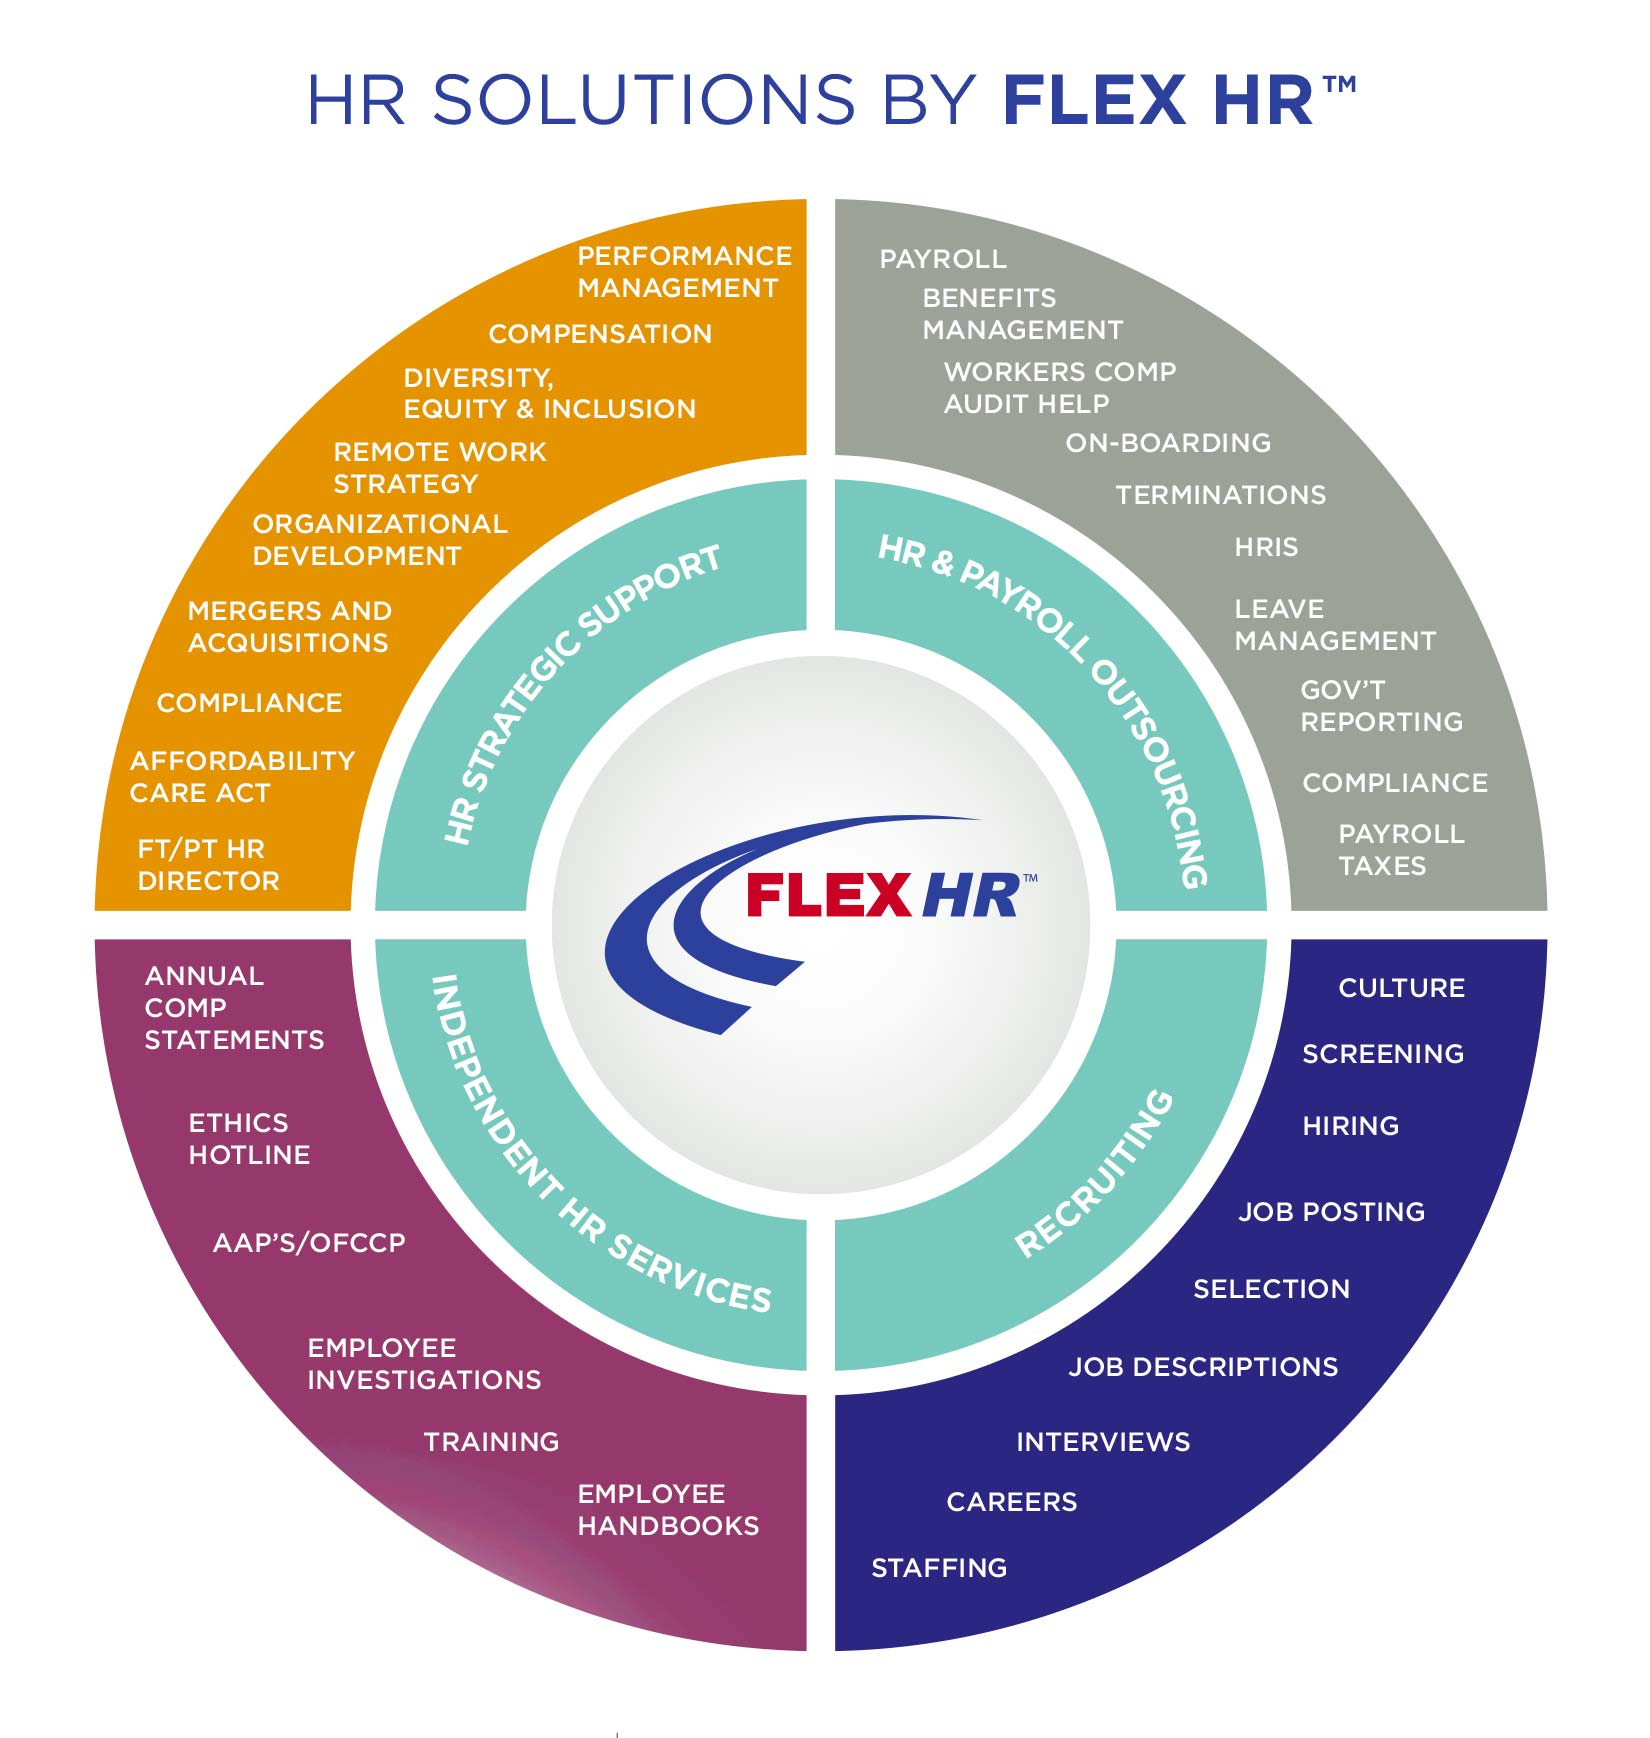 HR outsourcing and consulting solutions chart